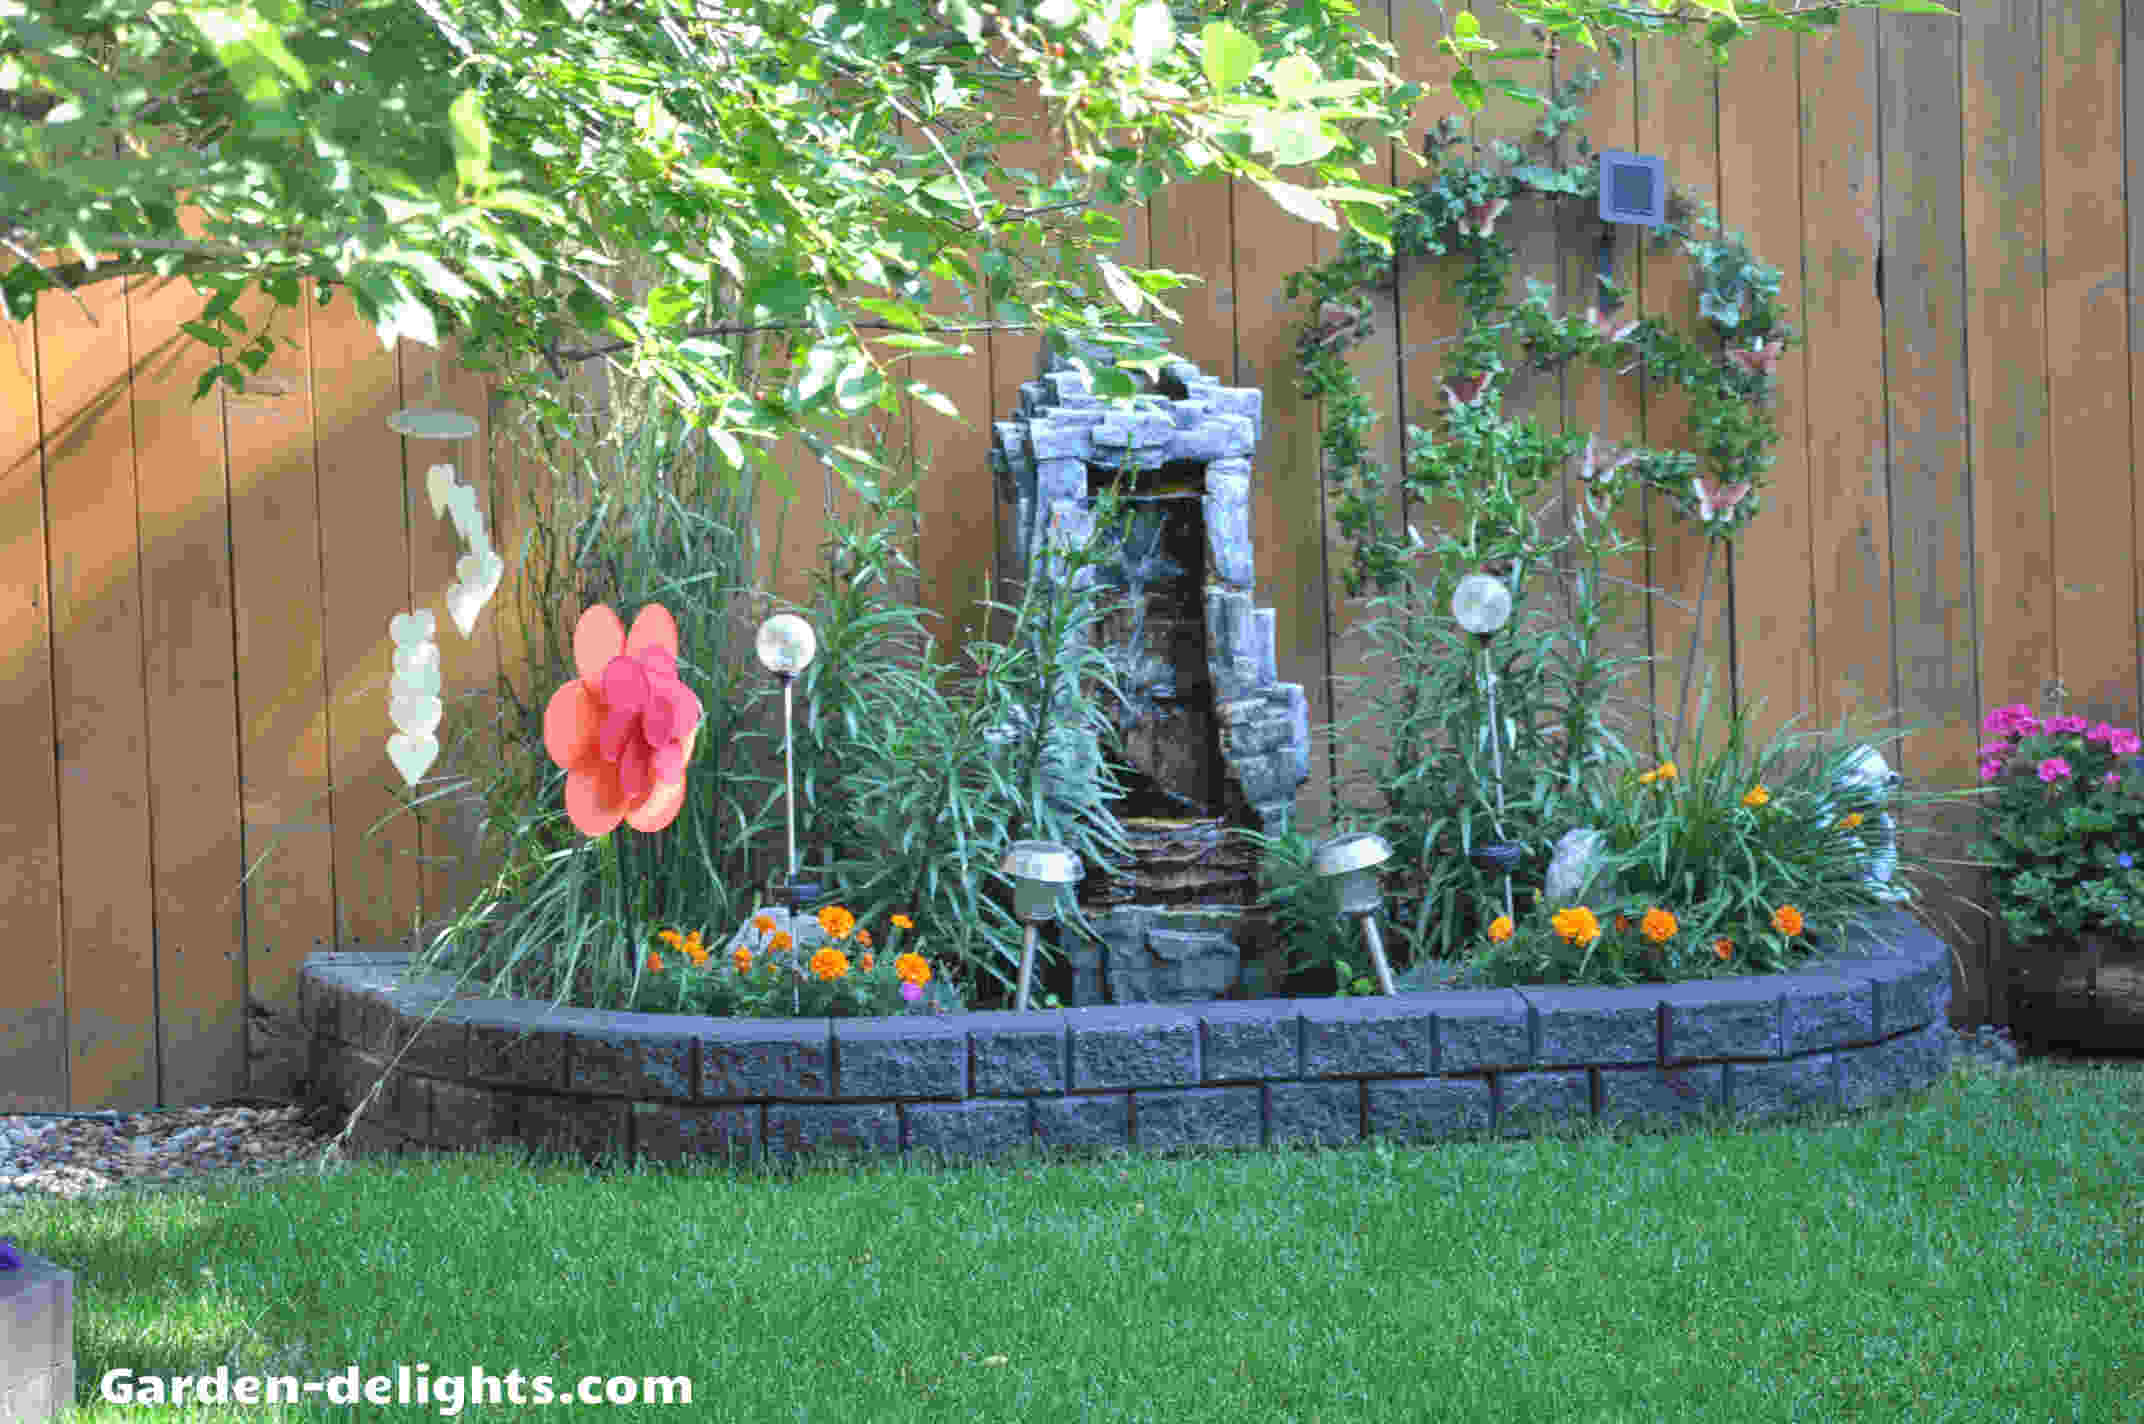 Stonewall water feature in flower bed surrounded by red tulips against Cedar fence, water fountain, Home Depot, large outdoor fountains, landscaping ideas, backyard planning, patios,Gardening insights, modern fountain, sleek fountain, water fountain ideas, garden water feature, small water features.